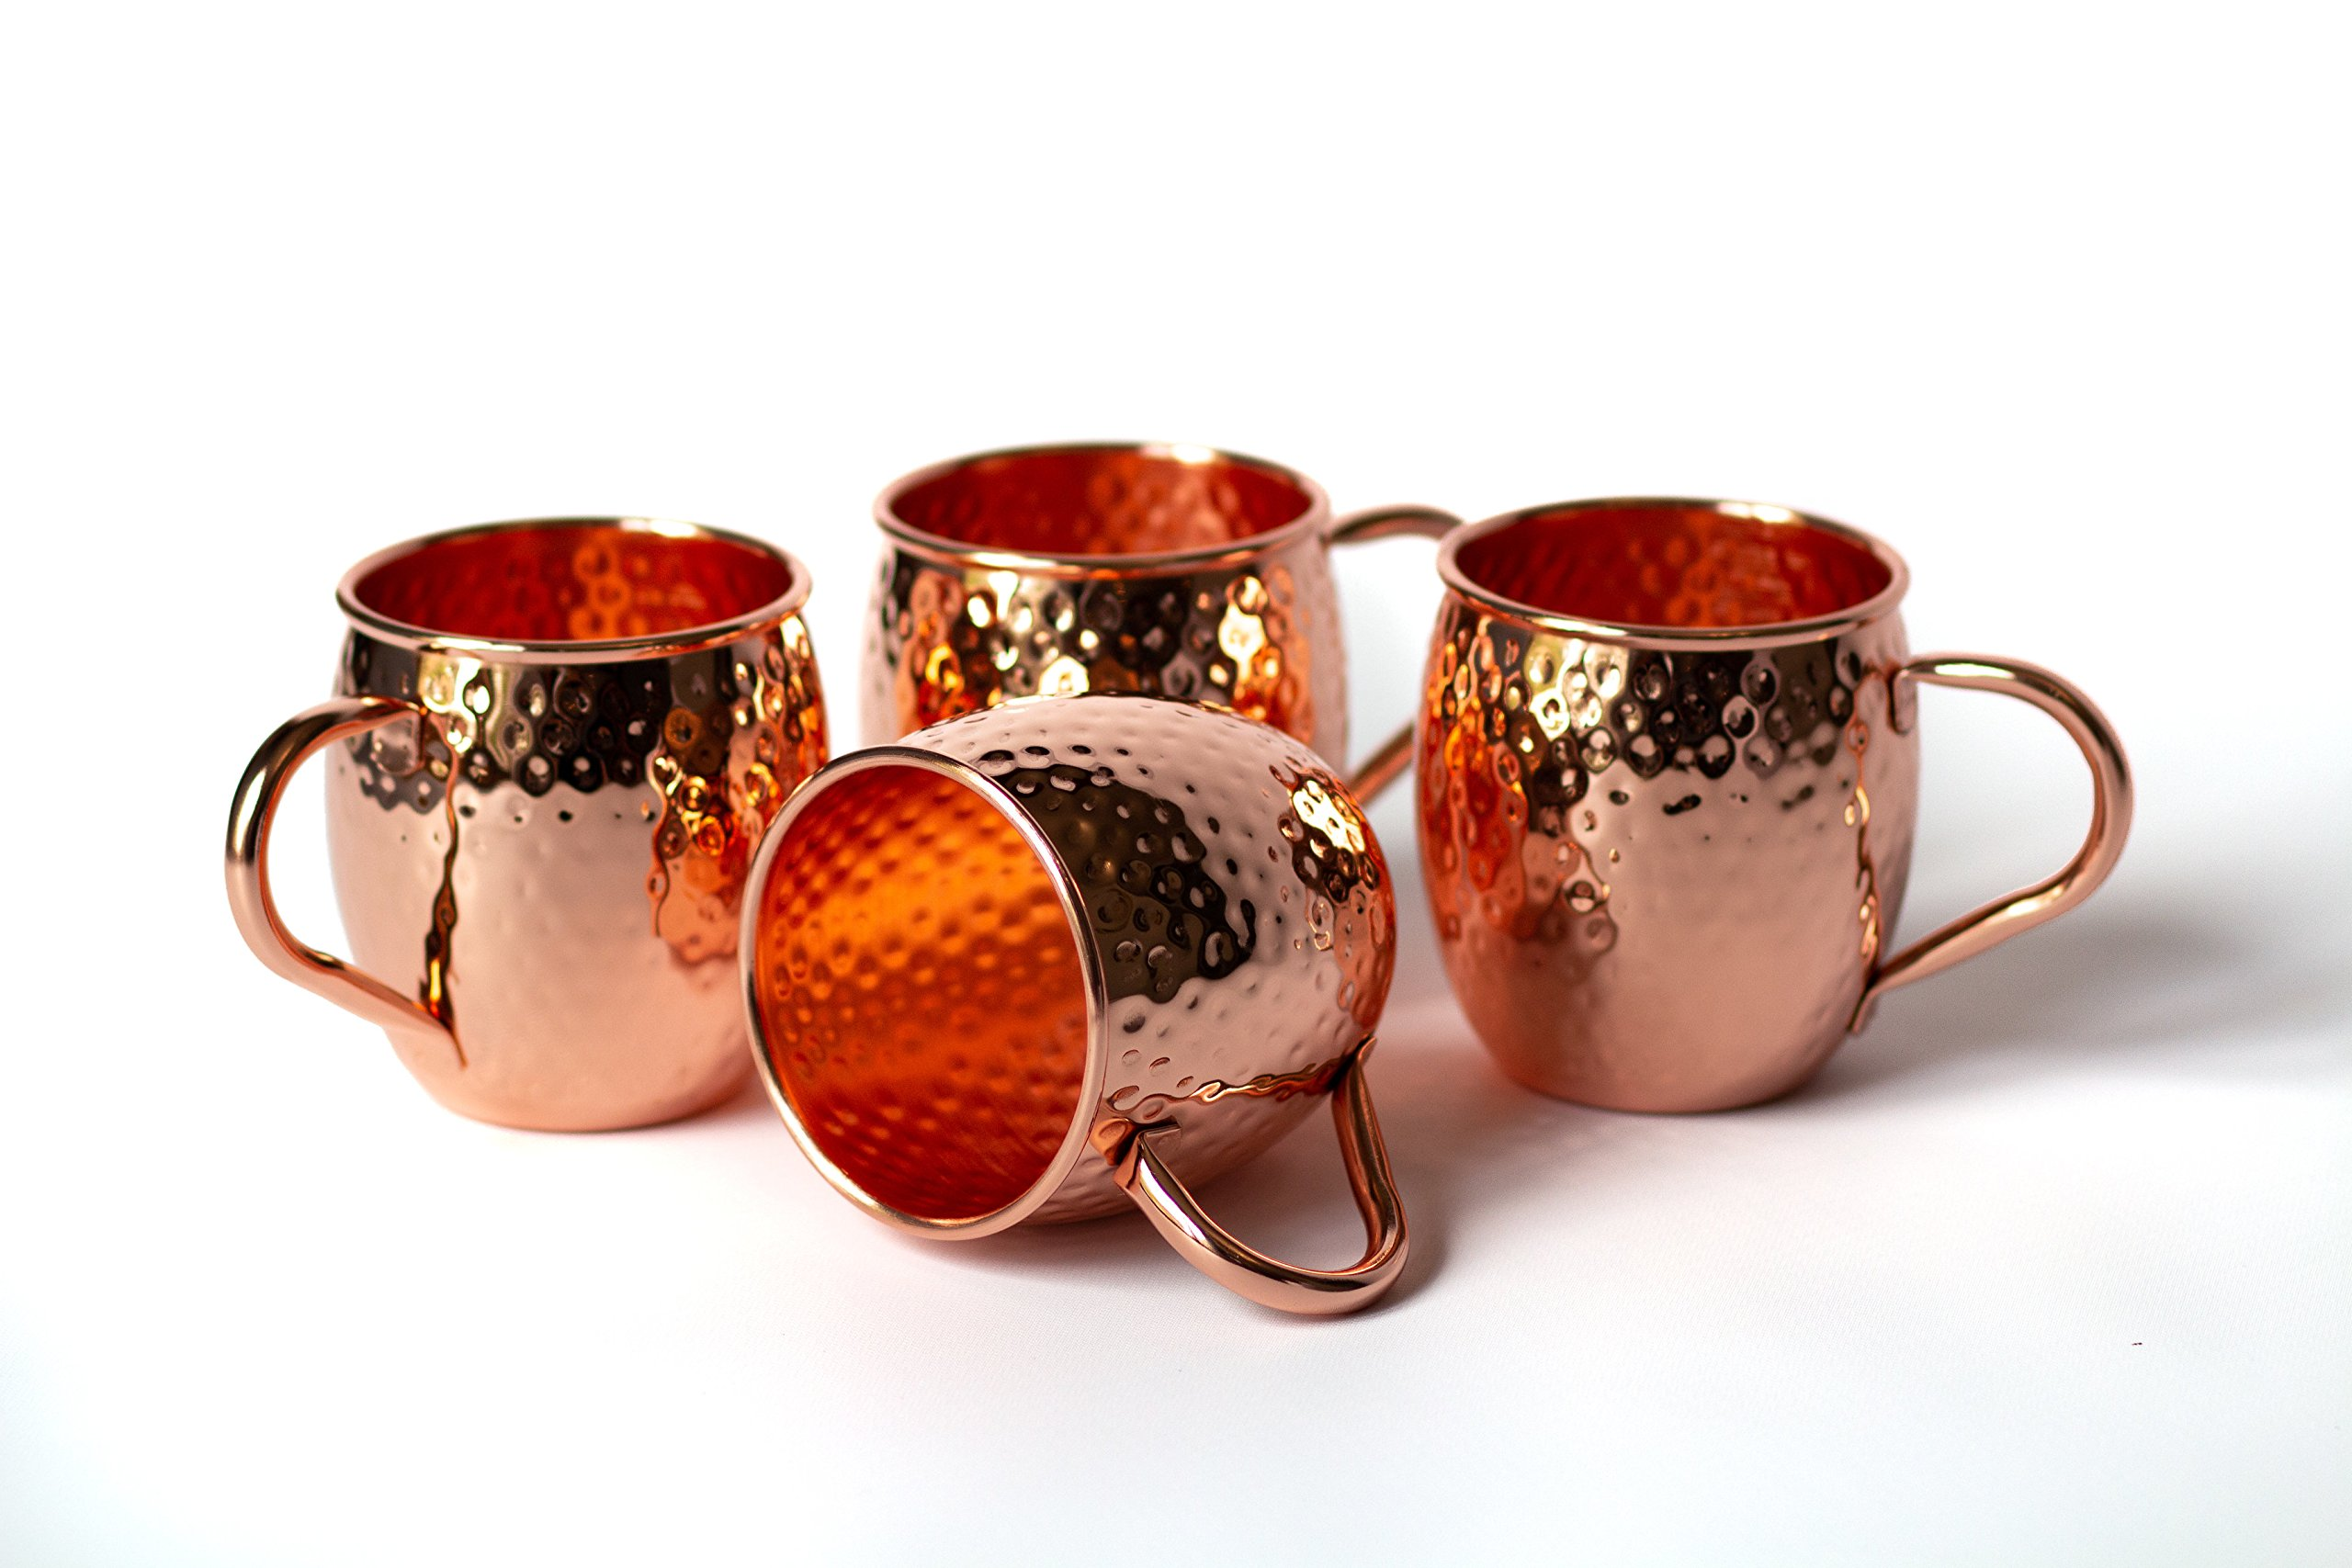 Moscow Mule Copper Mugs - Set of 4 - Back Bay House & Home - Artisan Hammered